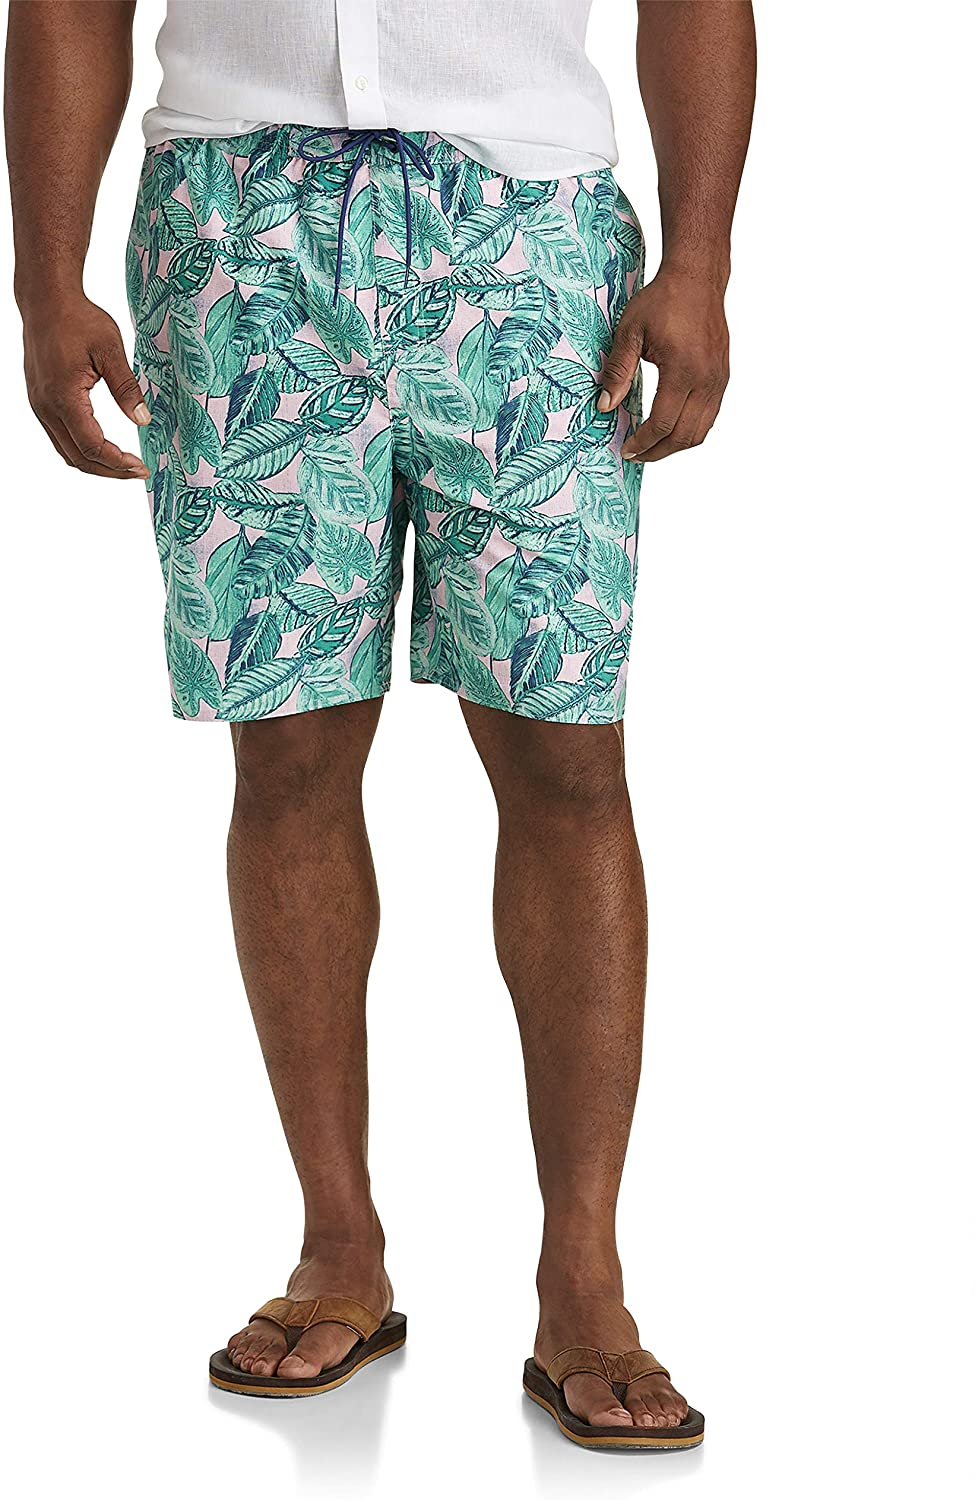 Island Passport by DXL Big and Tall Beverly Hills Floral Swim Trunks, Almond Blossom Pink